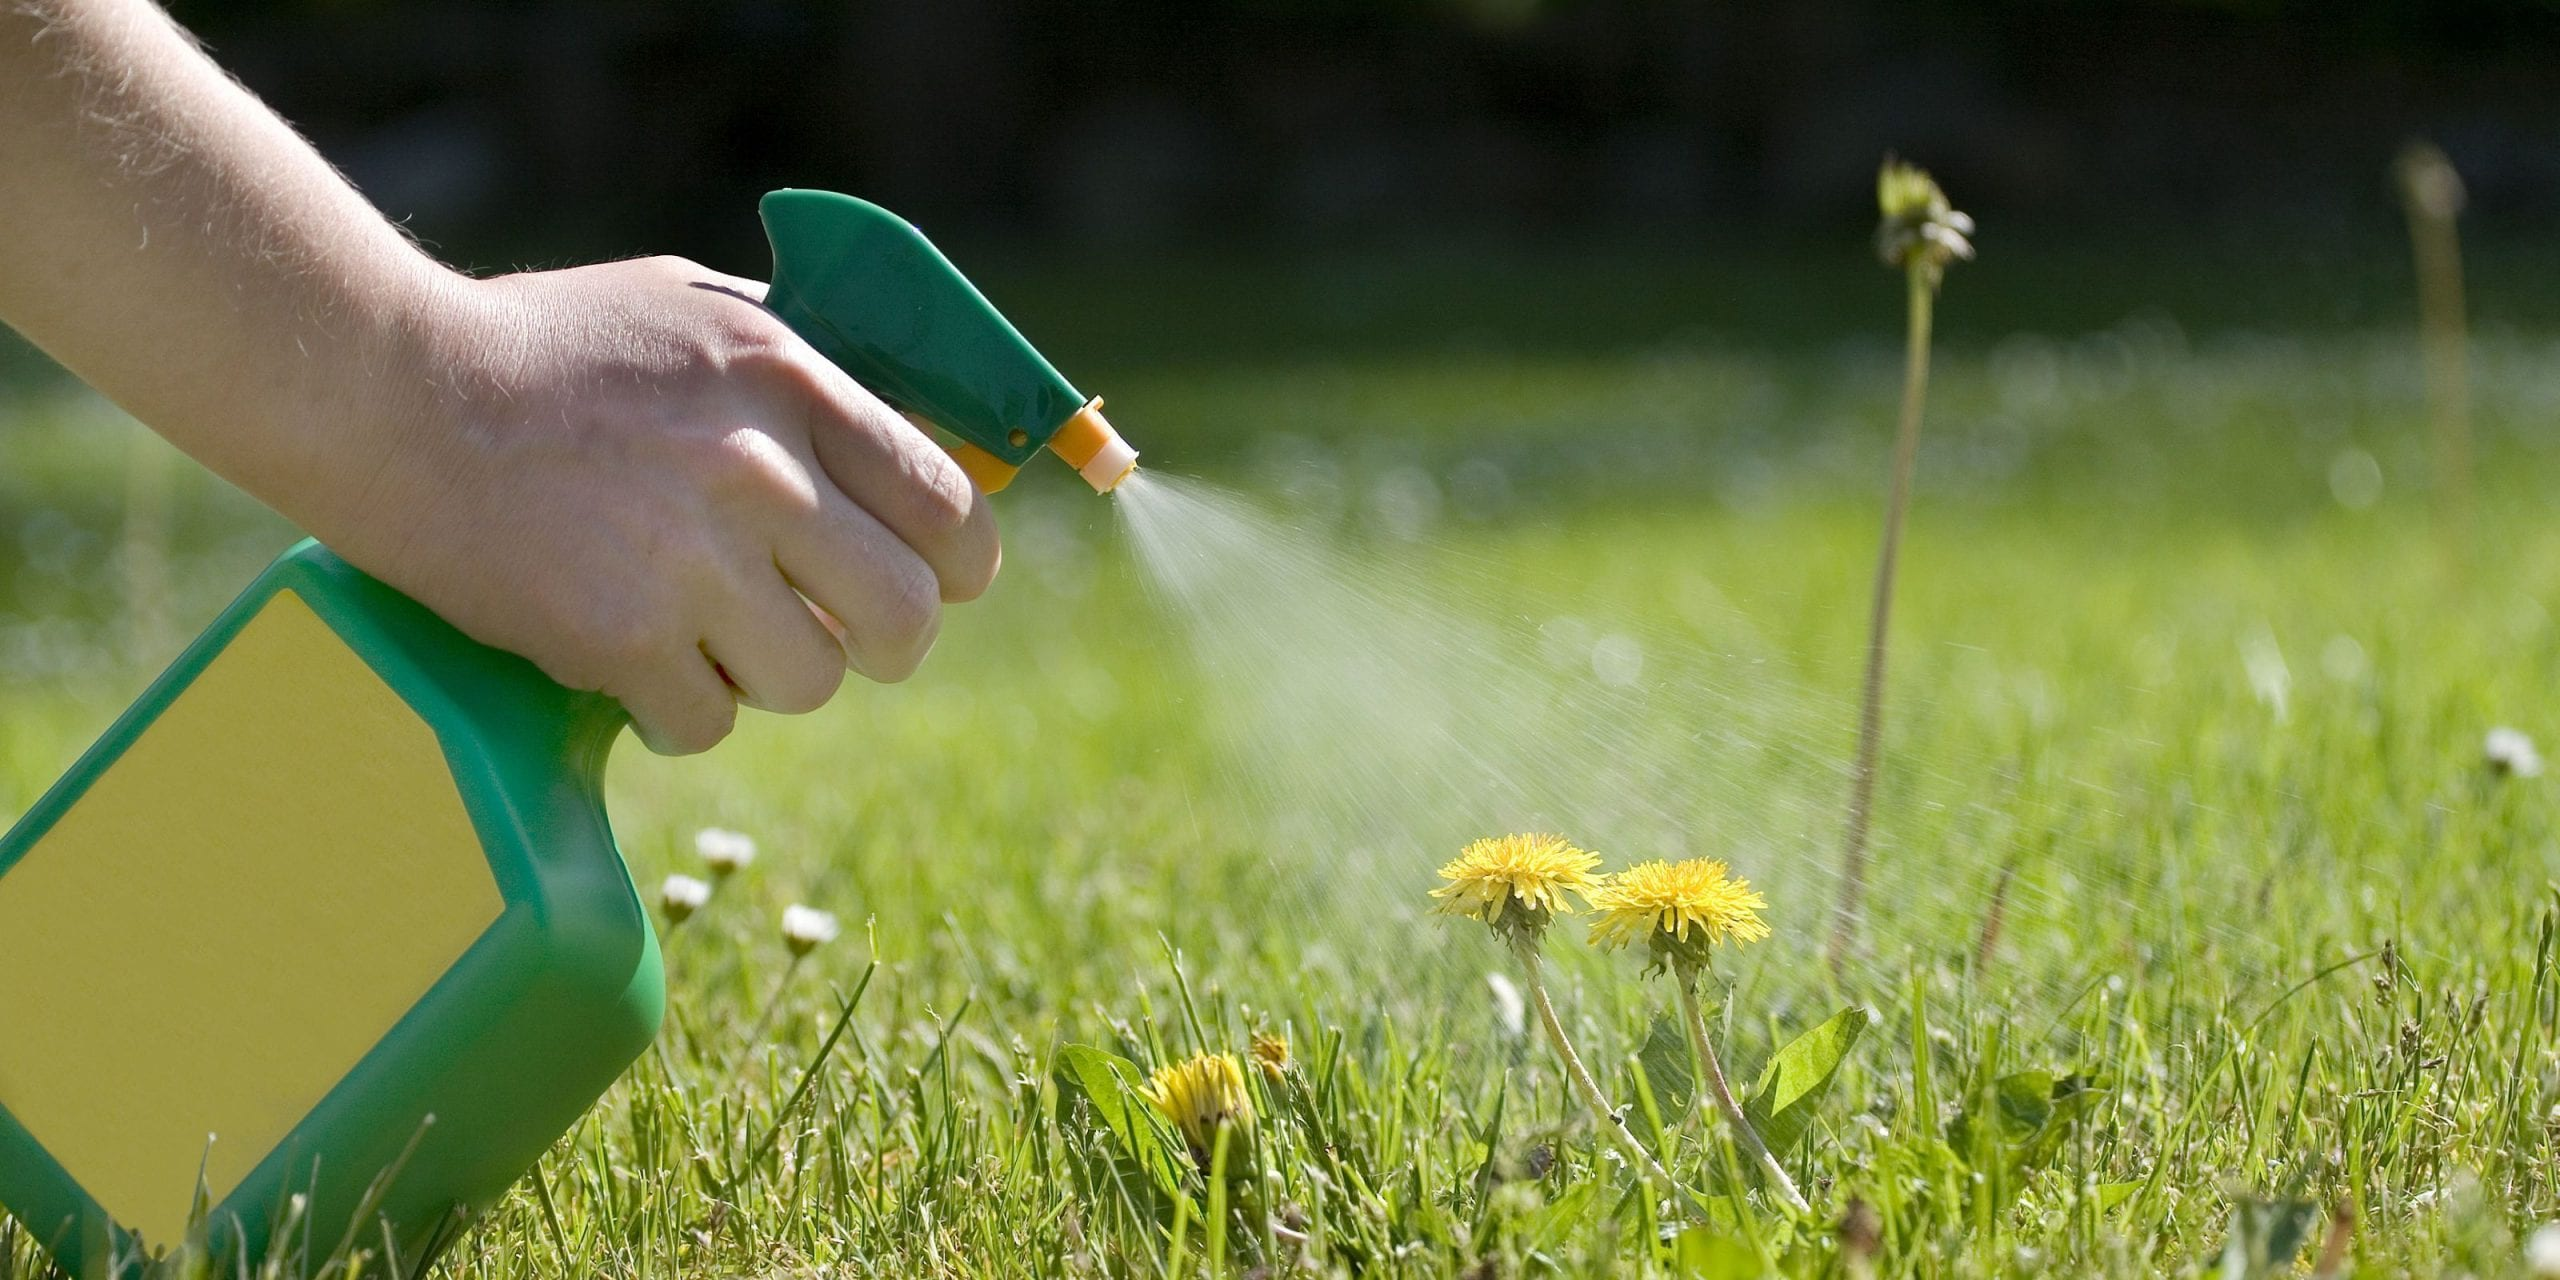 Herbicides to kill weeds